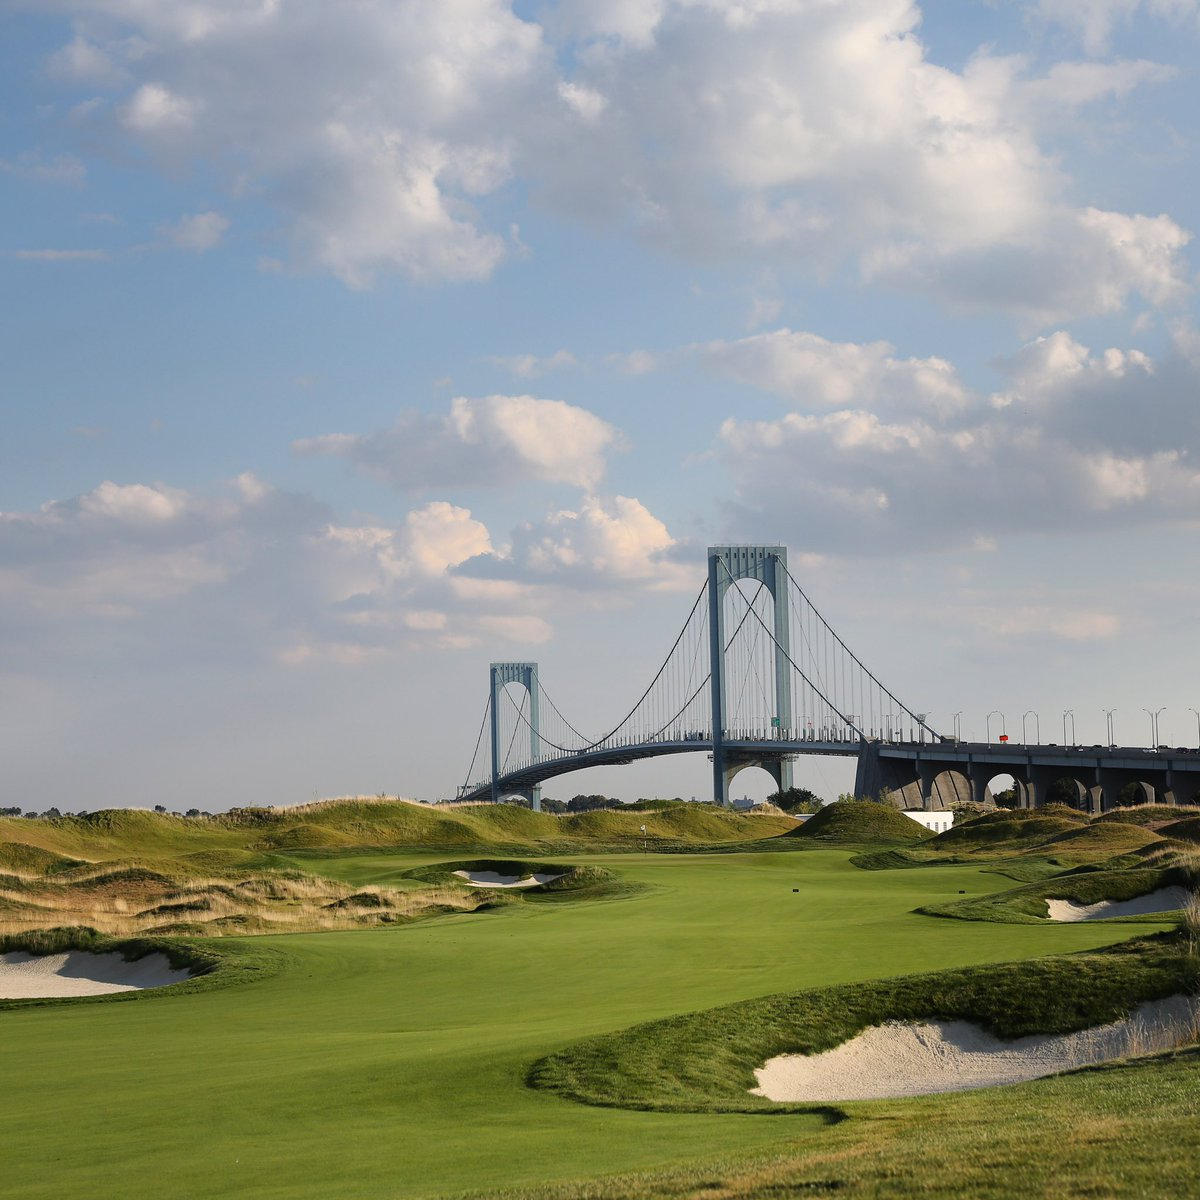 Before your drive splits the strategically placed fairway bunkers on Hole 9, take in the great view of the Whitestone Bridge and hit a mid iron into its tricky green ⛳️ #FairwayFriday